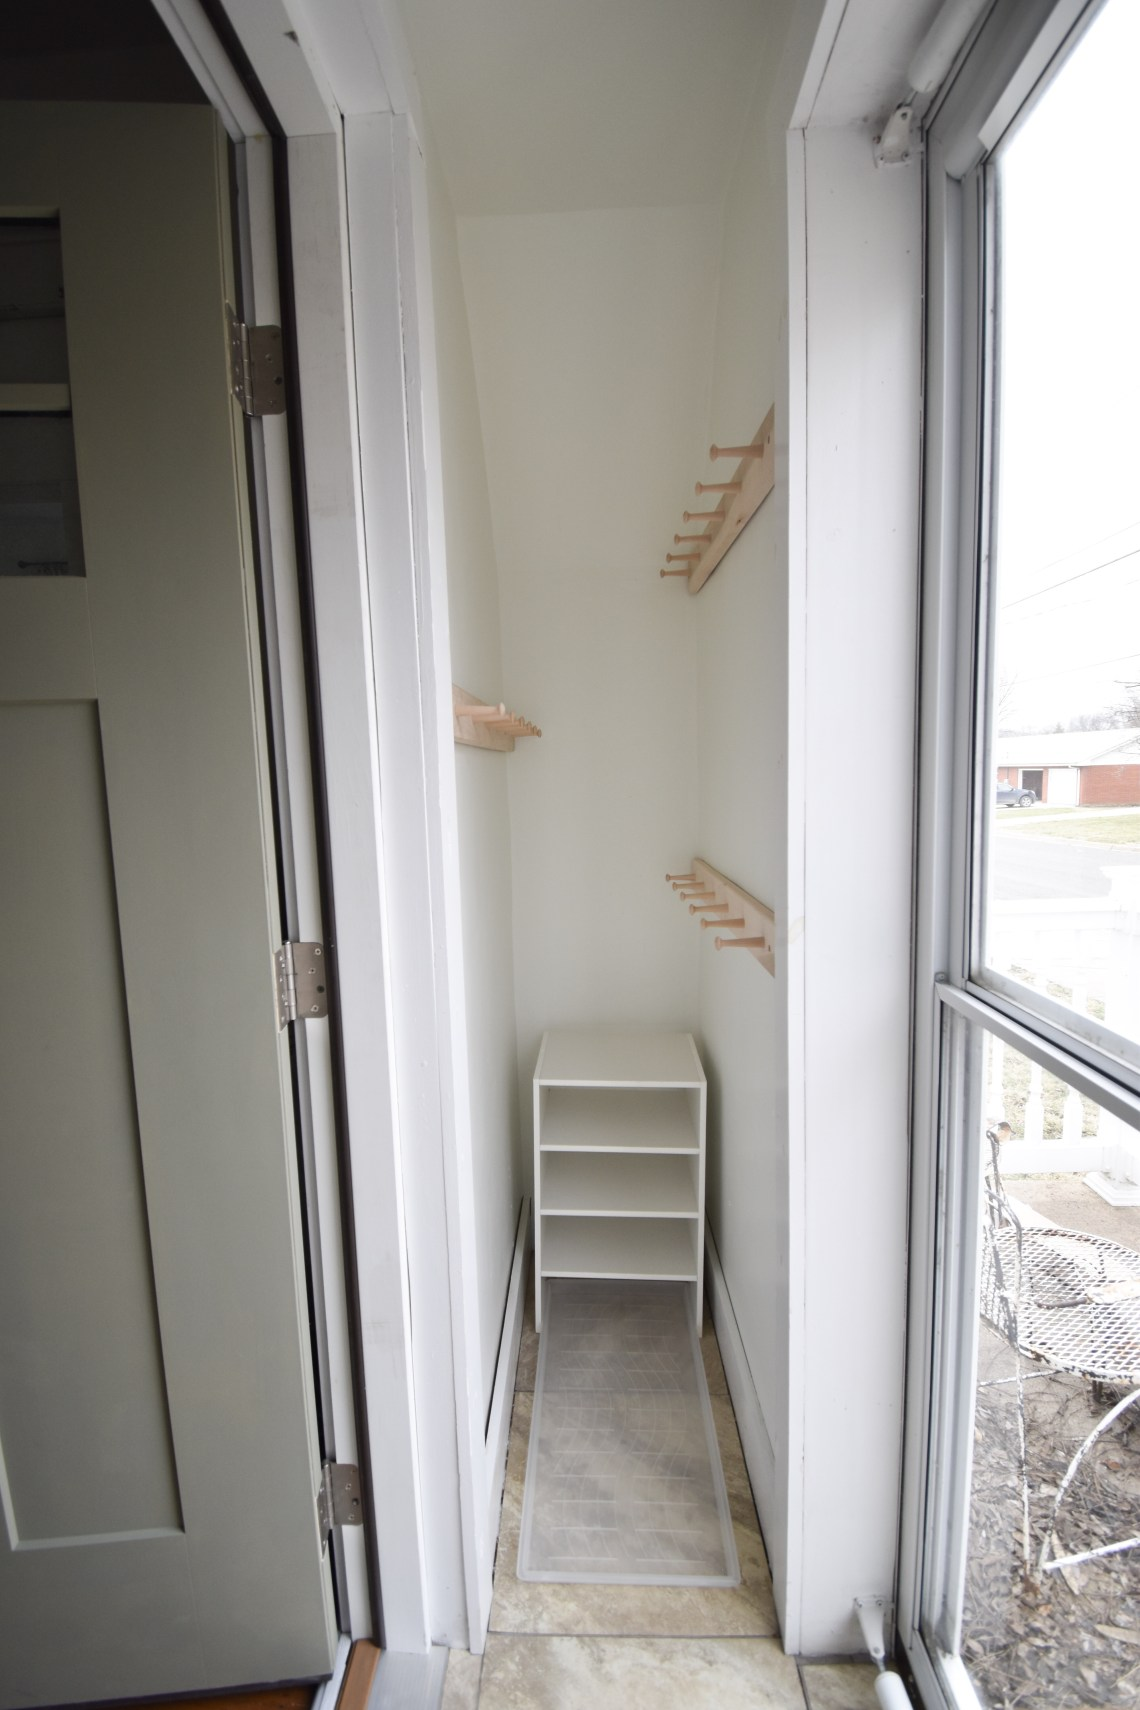 How to Organize Small entryway Spaces in a Small Home